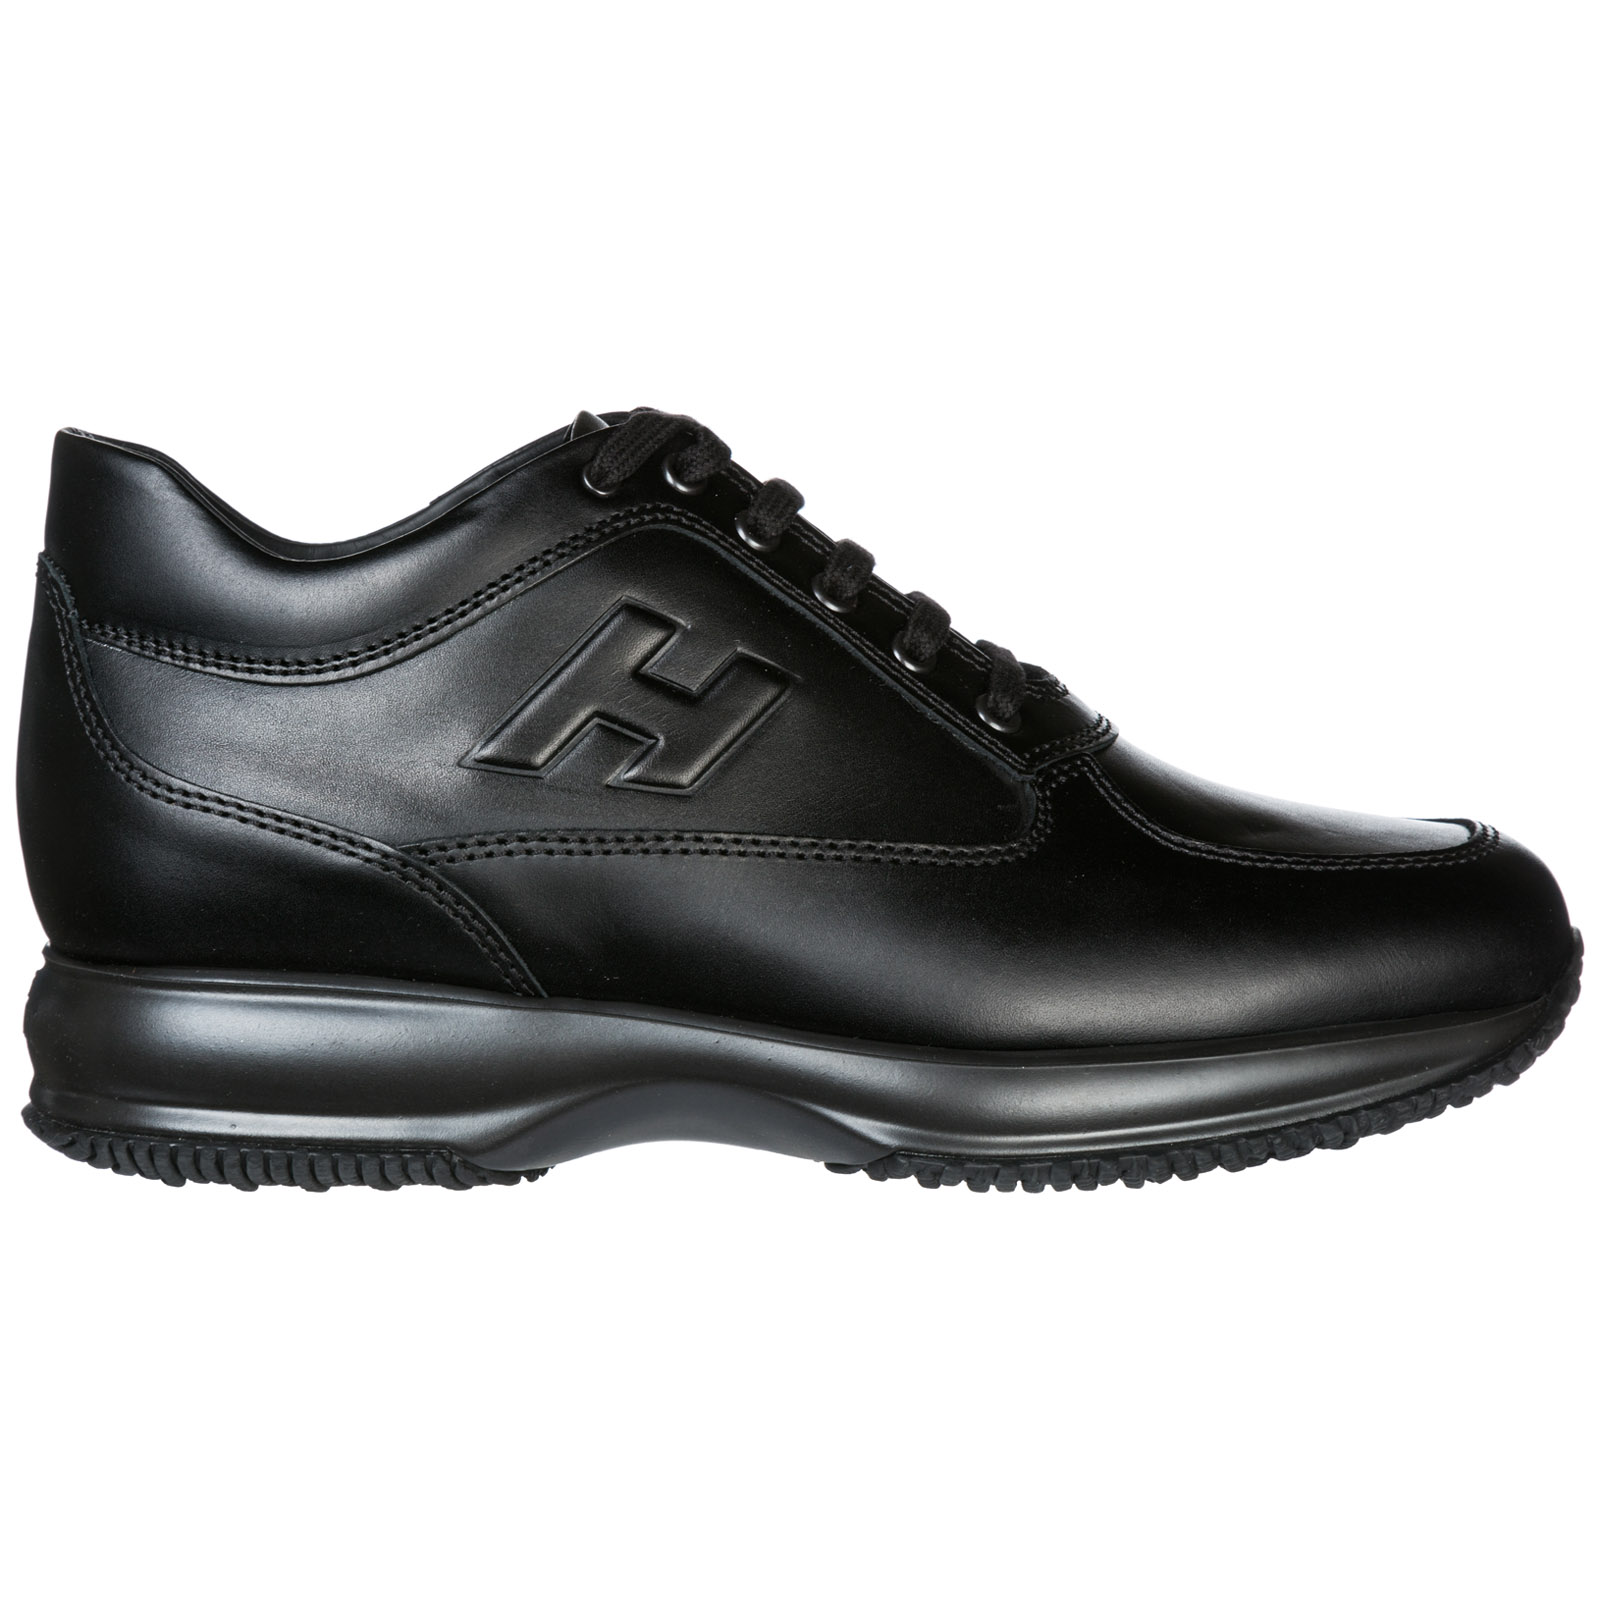 Hogan Men's Shoes Leather Trainers Sneakers Interactive In Black ...